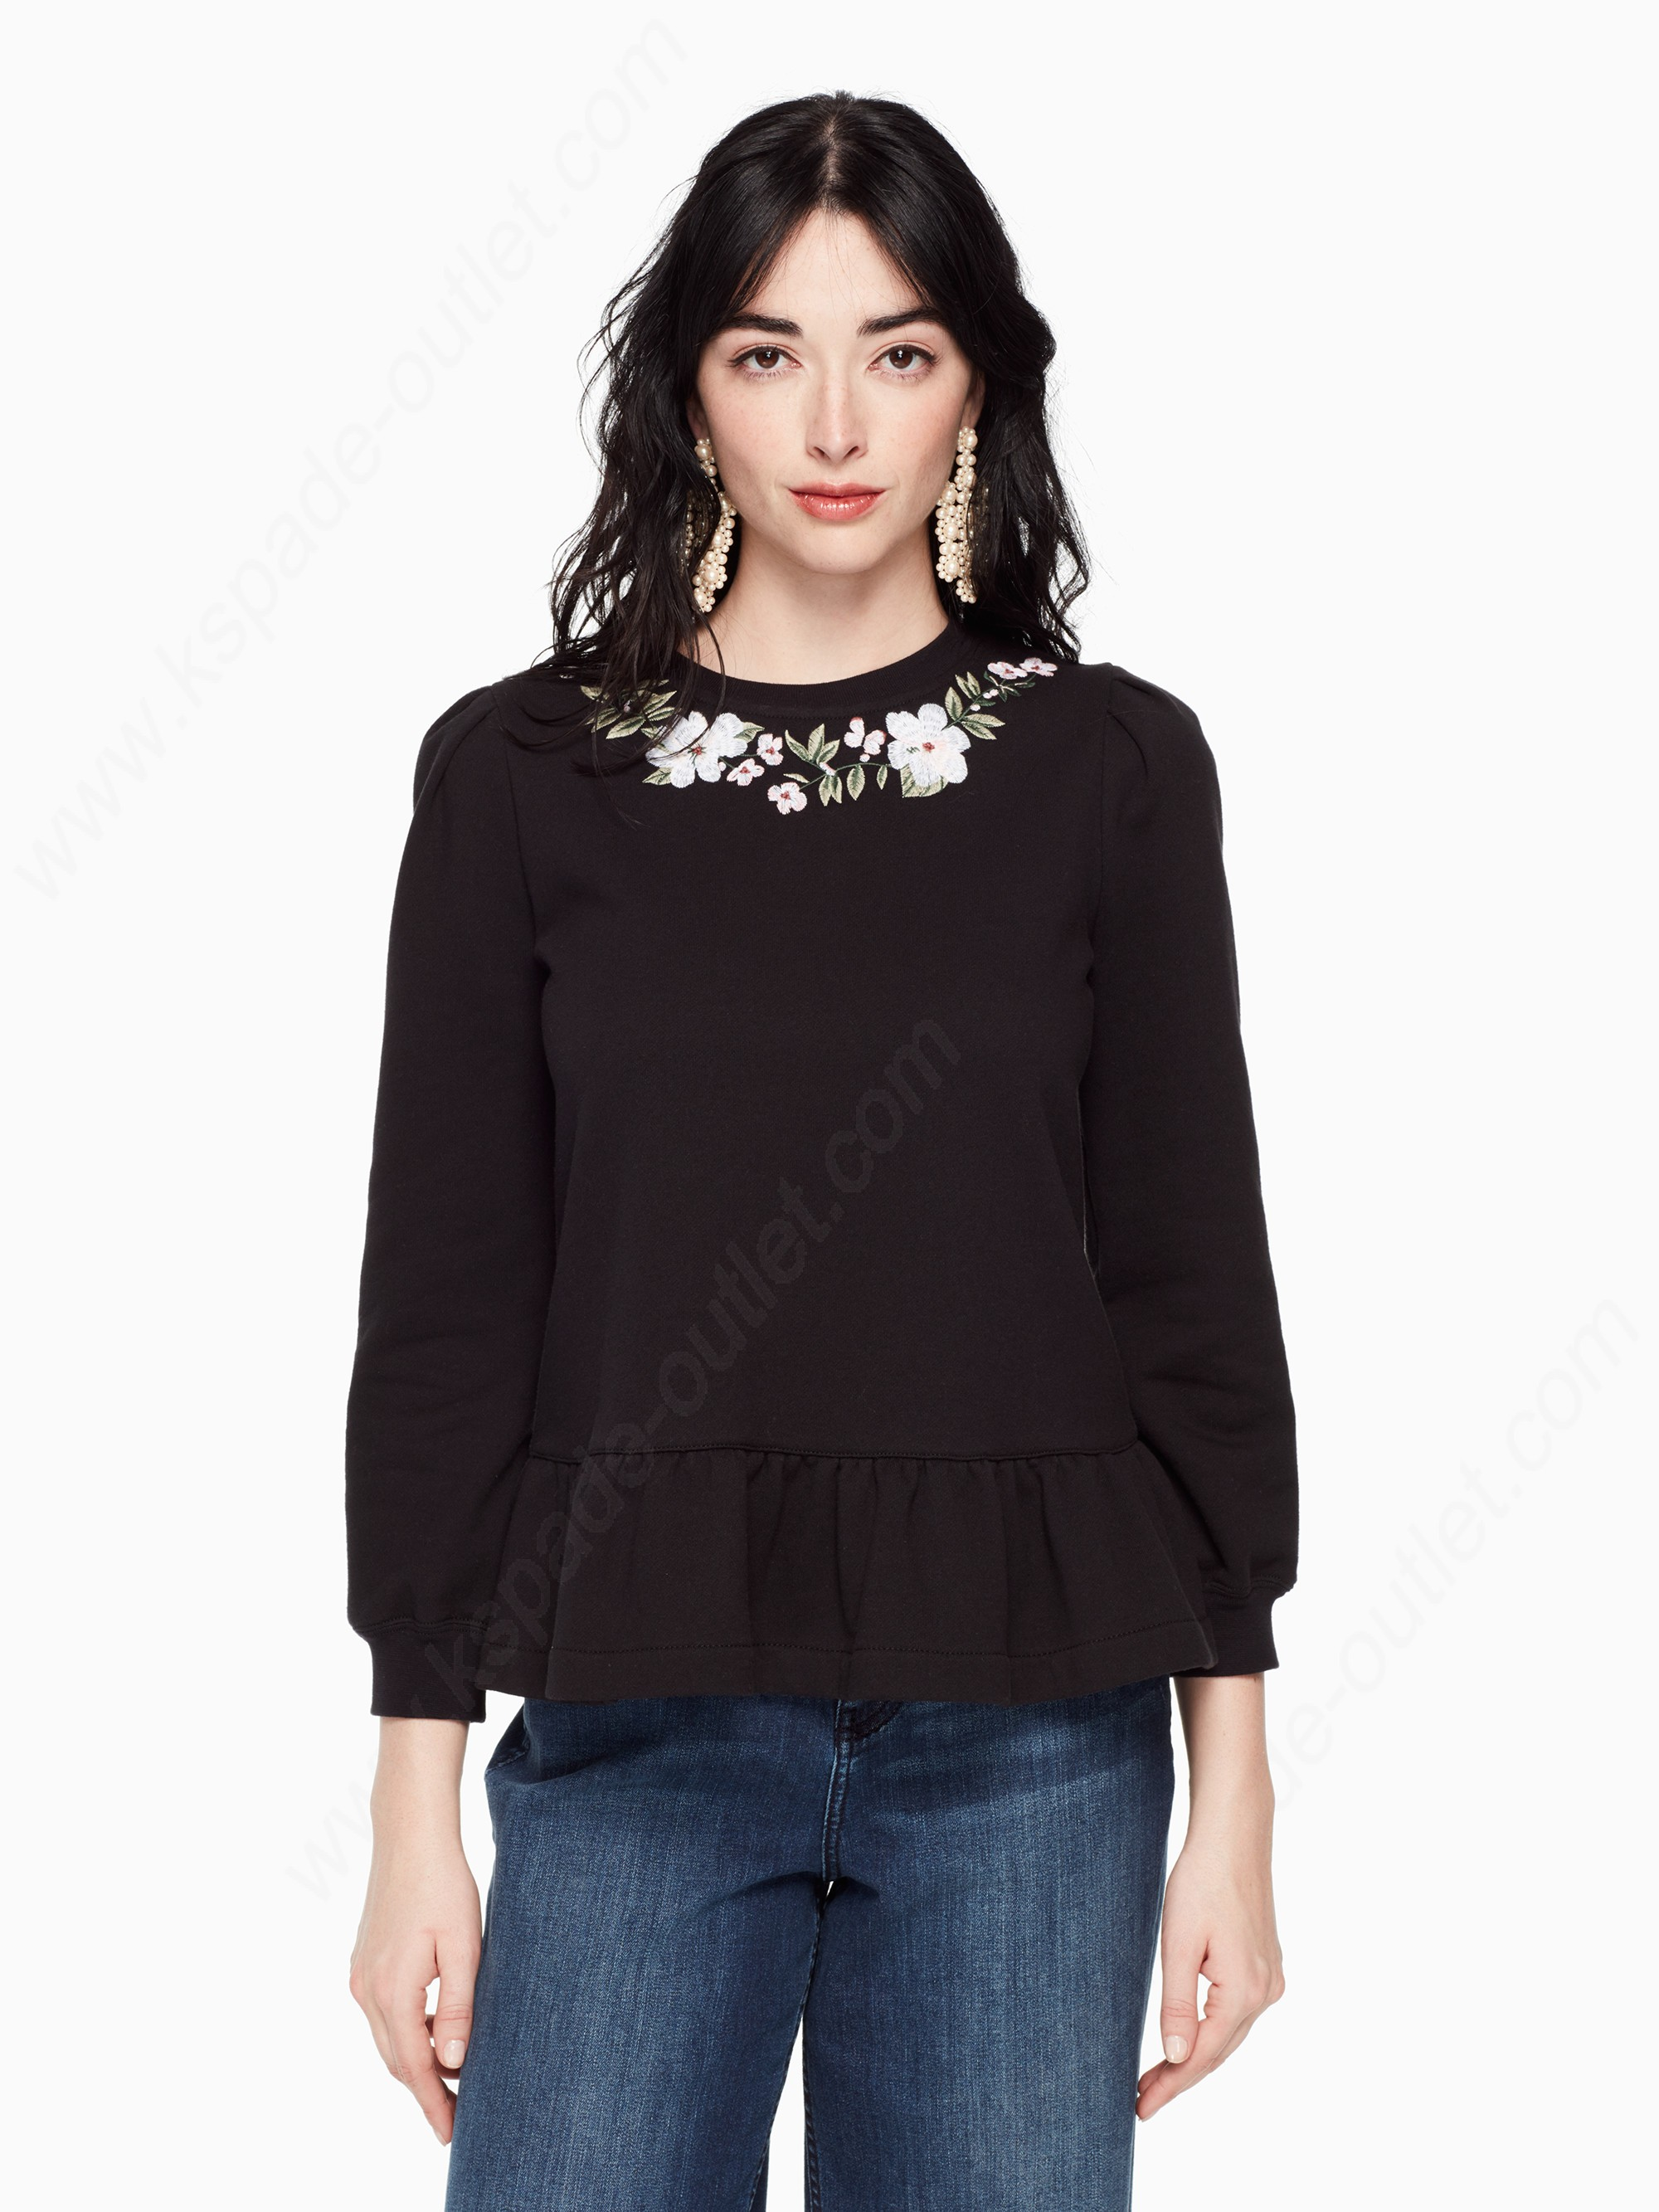 Kate Spade Womens Clothing Embroidered Pullover - Kate Spade Womens Clothing Embroidered Pullover